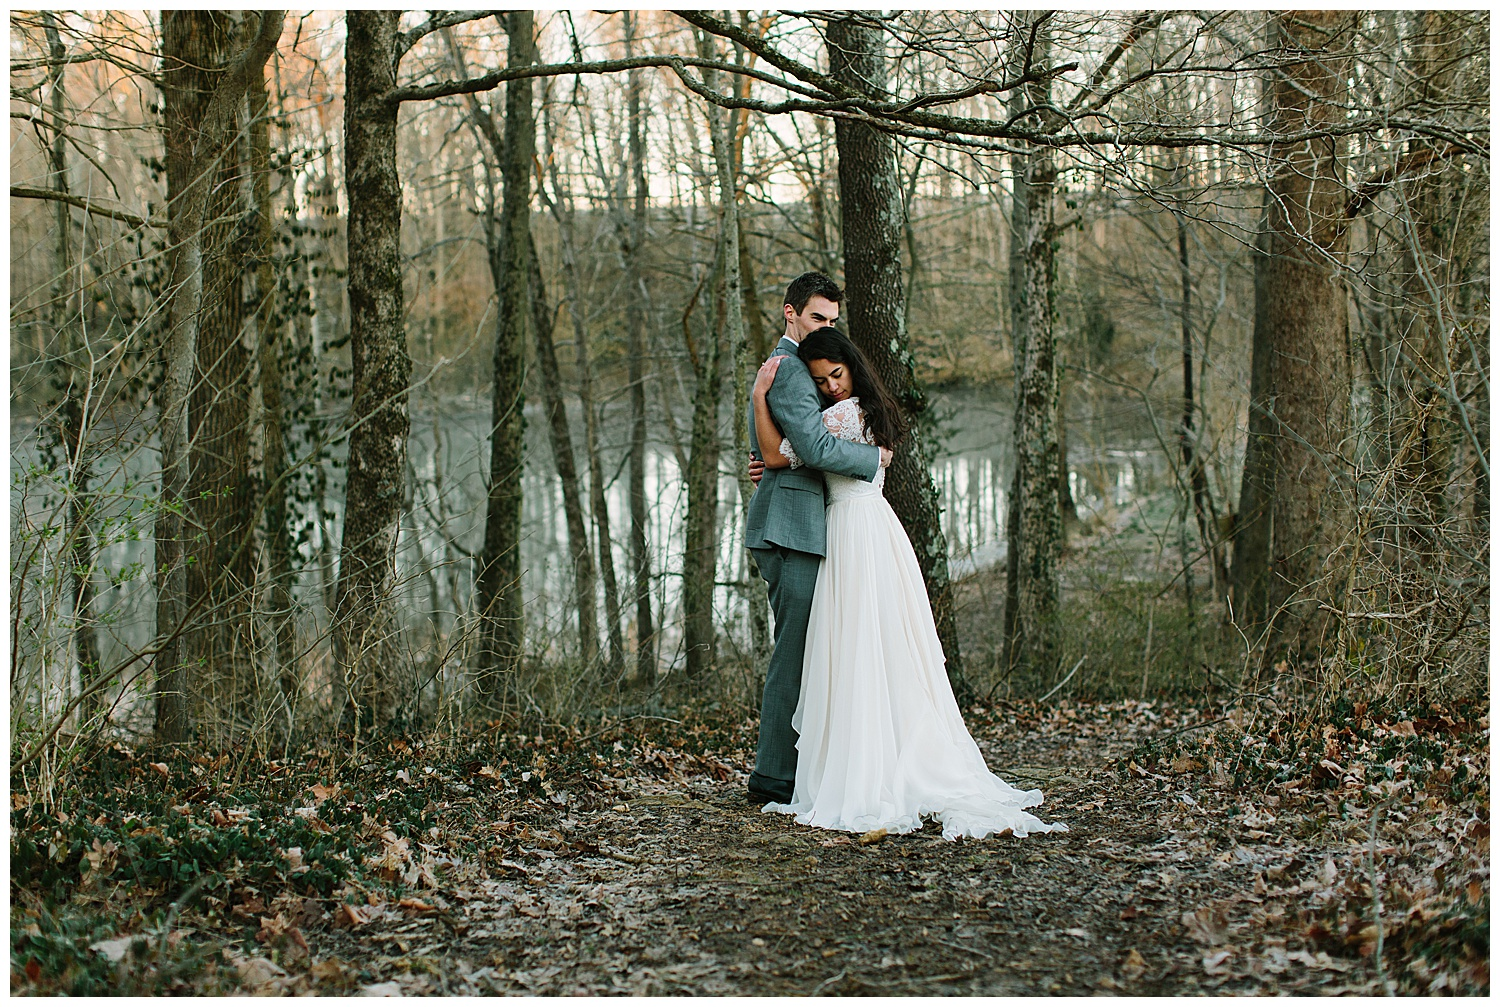 trent.and.kendra.photography.foxhollow.farm.elopement-33.jpg